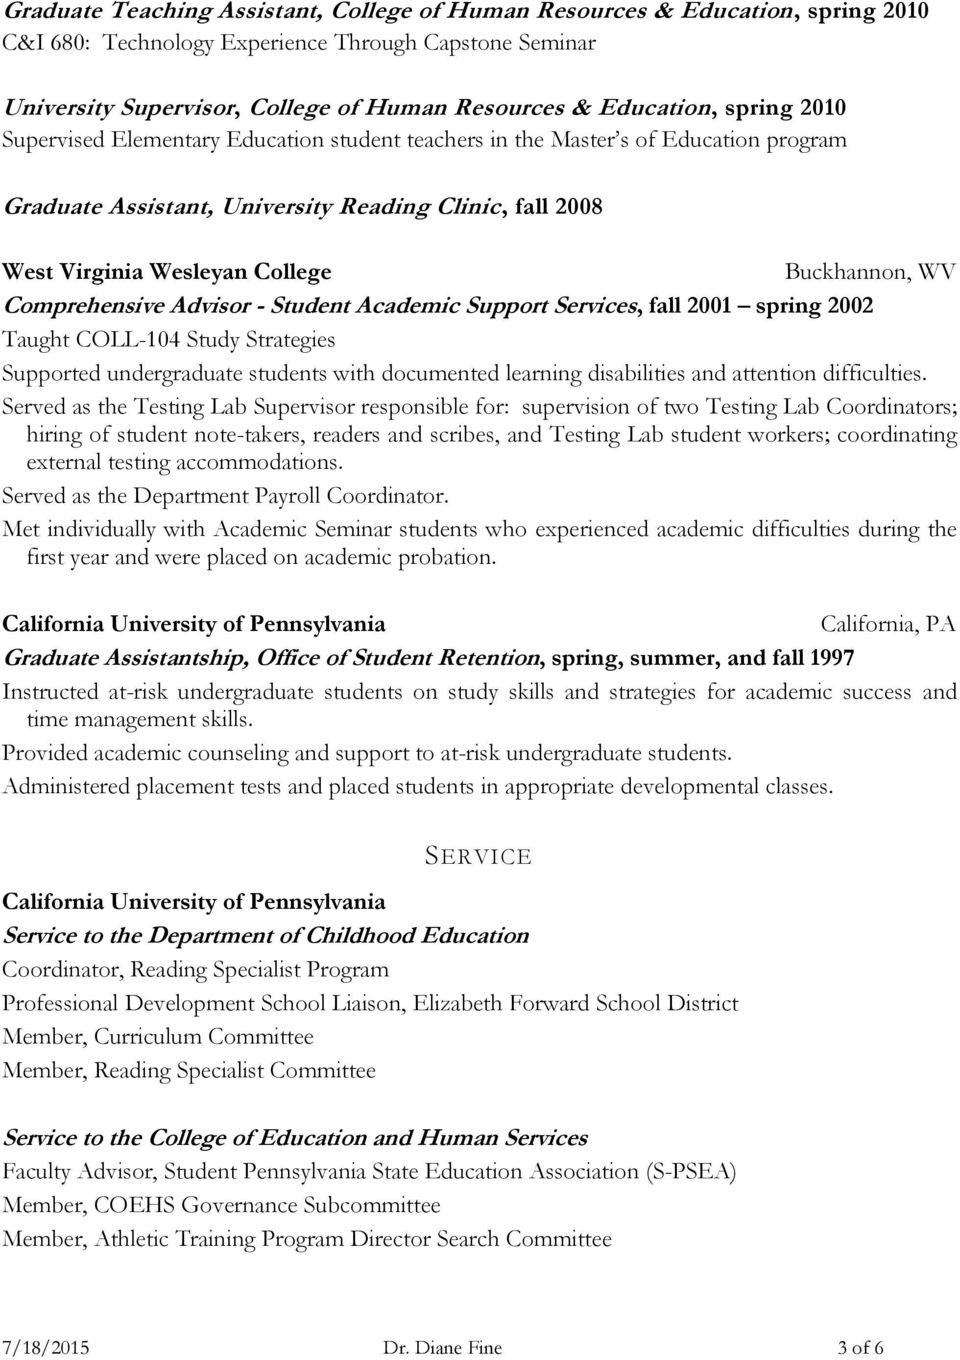 WV Comprehensive Advisor - Student Academic Support Services, fall 2001 spring 2002 Taught COLL-104 Study Strategies Supported undergraduate students with documented learning disabilities and